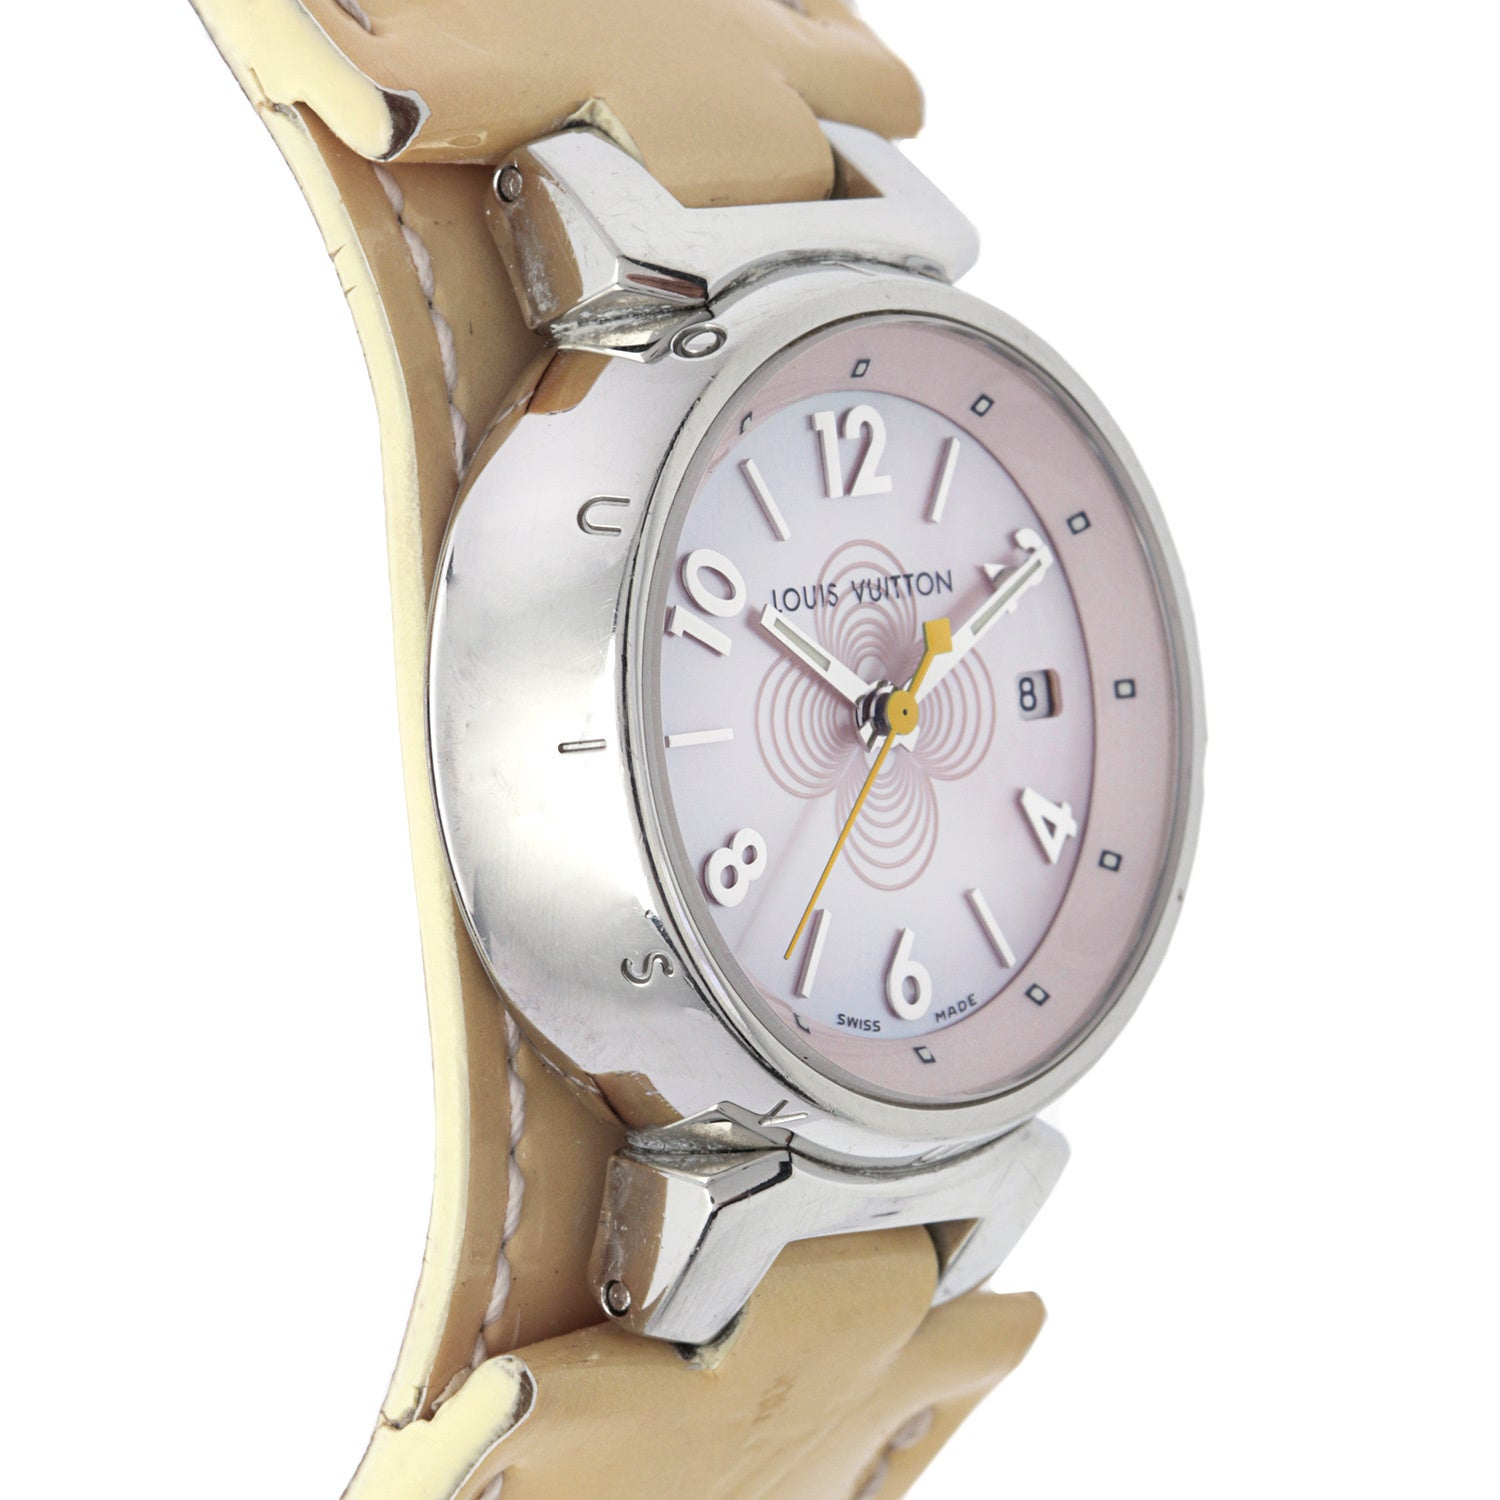 b896f6ca14f6 Shop Pre-Owned Louis Vuitton Women s Beige Leather Watch - Free Shipping  Today - Overstock - 9344841